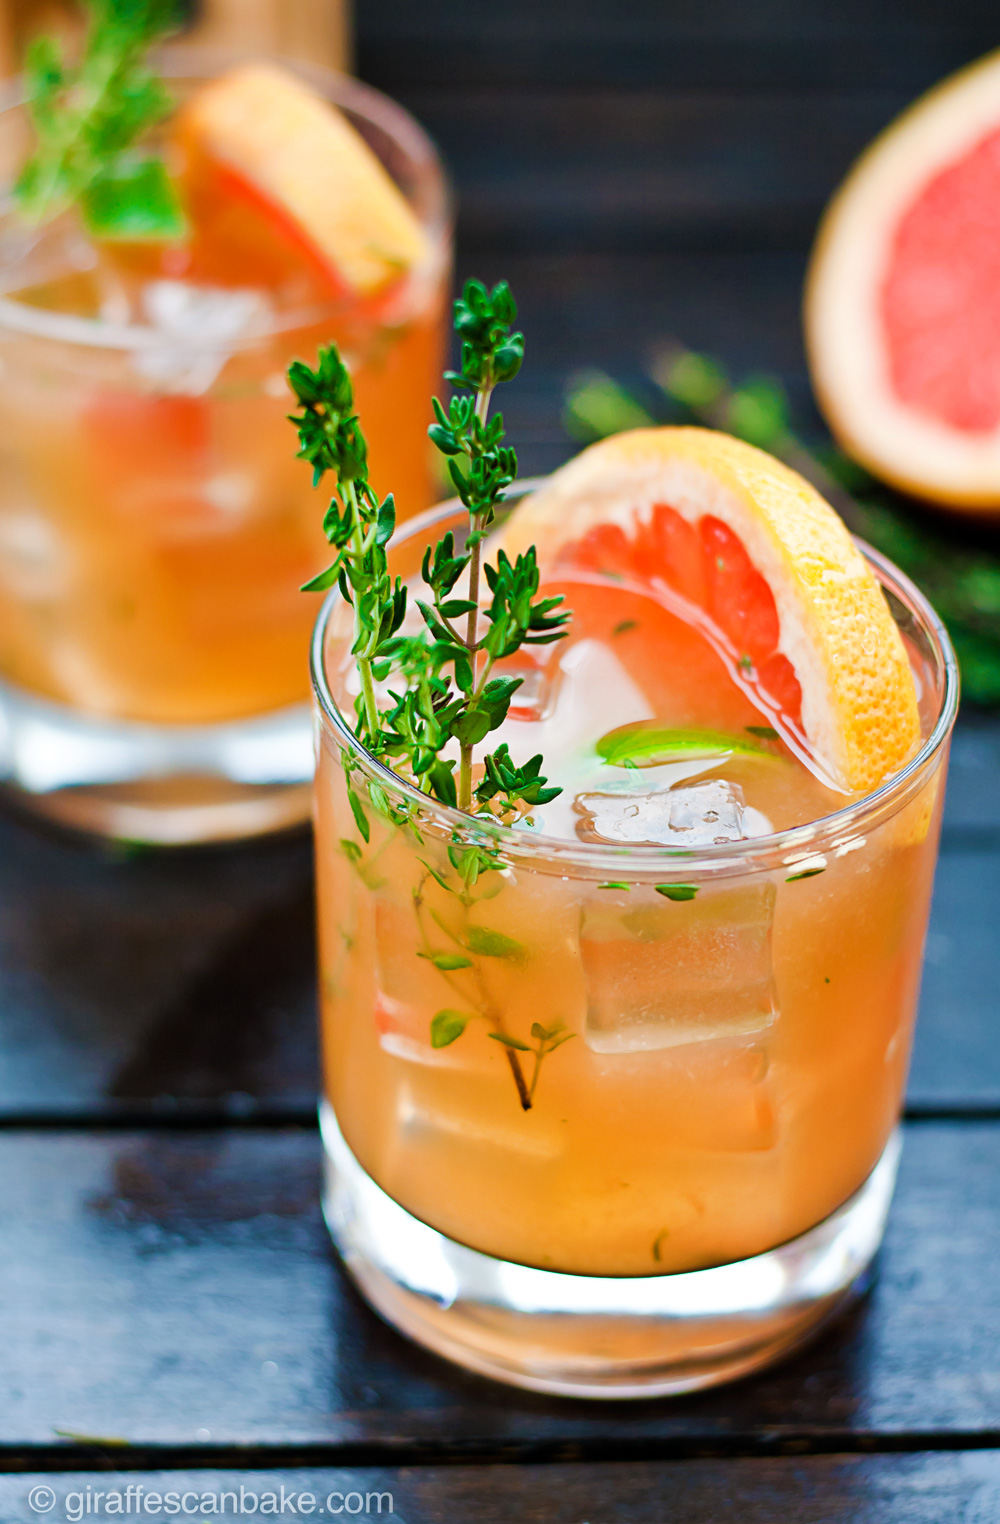 This Grapefruit and Thyme Bourbon Smash is full of bright citrus flavour and aromatic herbs, showcasing the best of winter seasonal fruit. Muddled lime and thyme, combined with fresh grapefruit juice and delicious bourbon, it's the perfect way to get the most out of those amazing grapefruits. This cocktail is refreshing, full of flavour and totally gorgeous – it's the perfect cocktail to serve at any occasion.